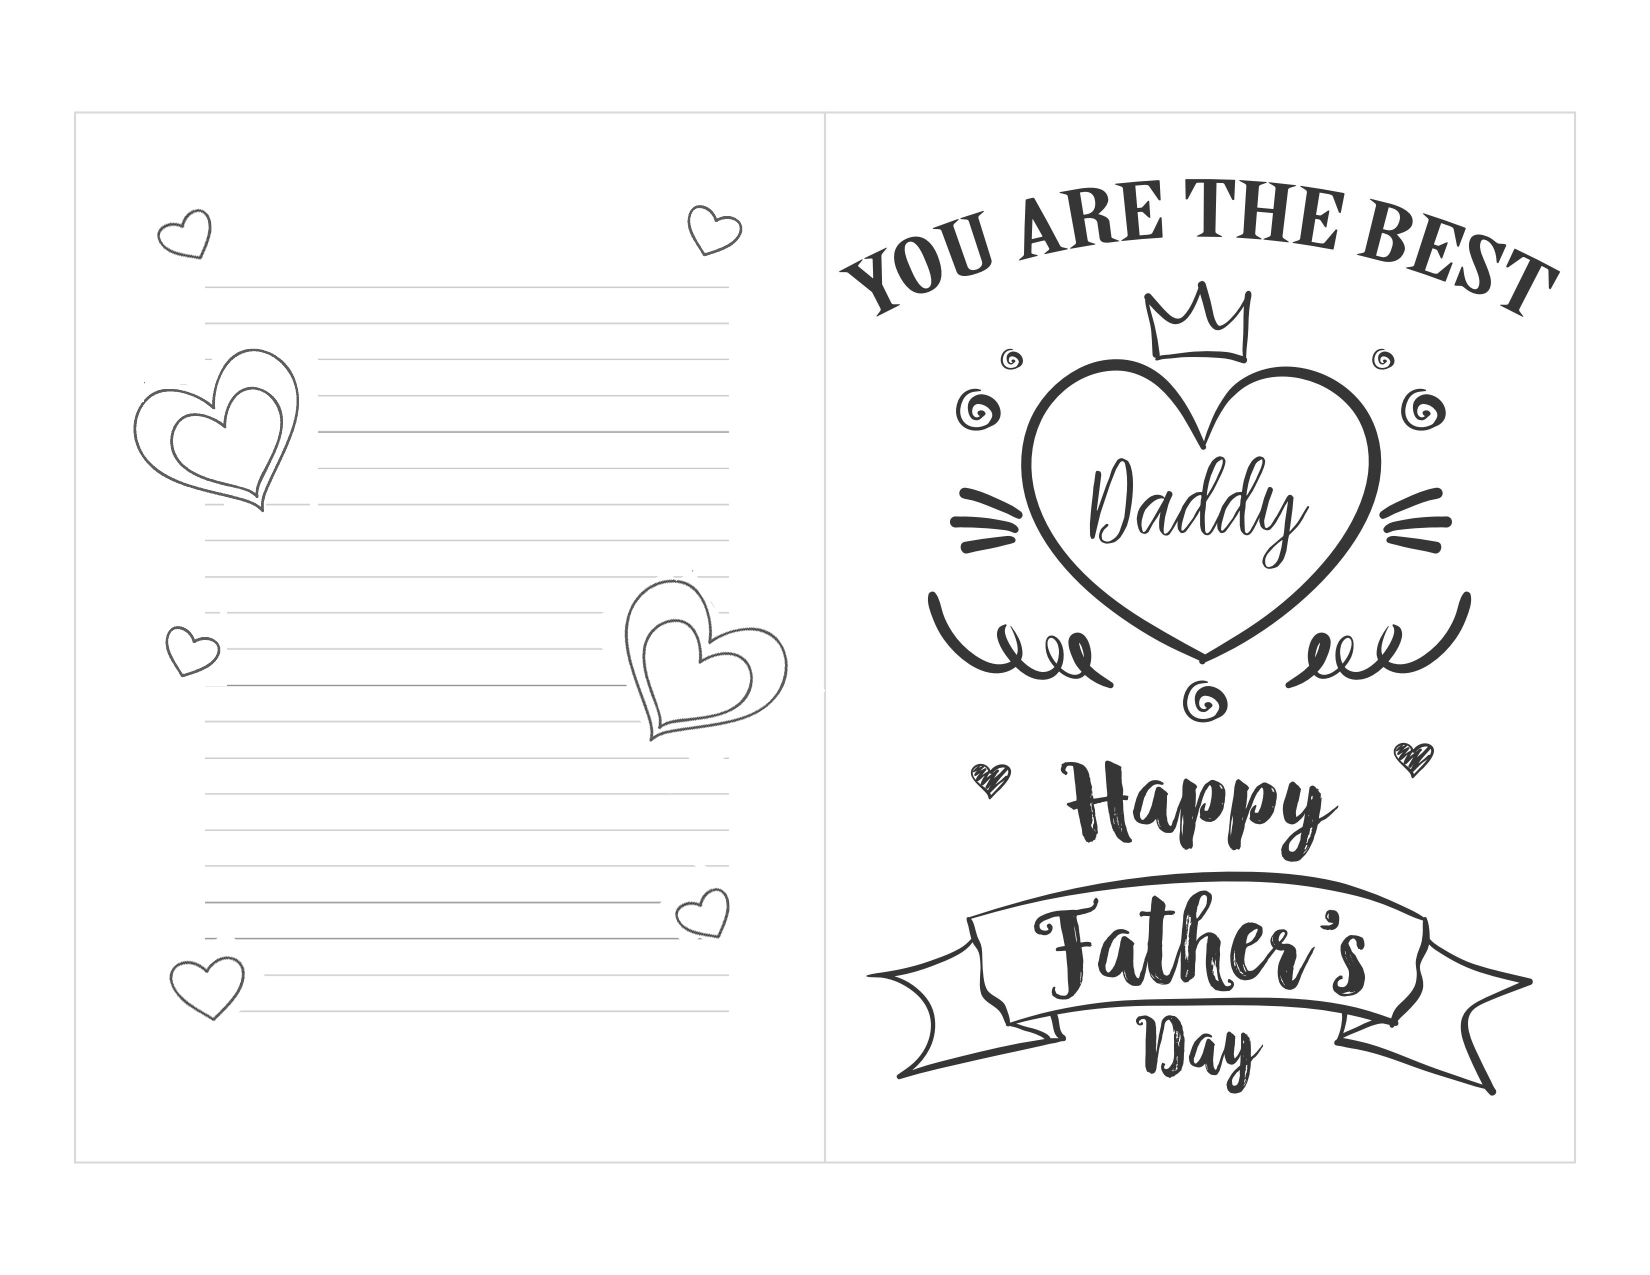 3 Different Types of Inspirational Father's Day Cards that Everyone Should Know